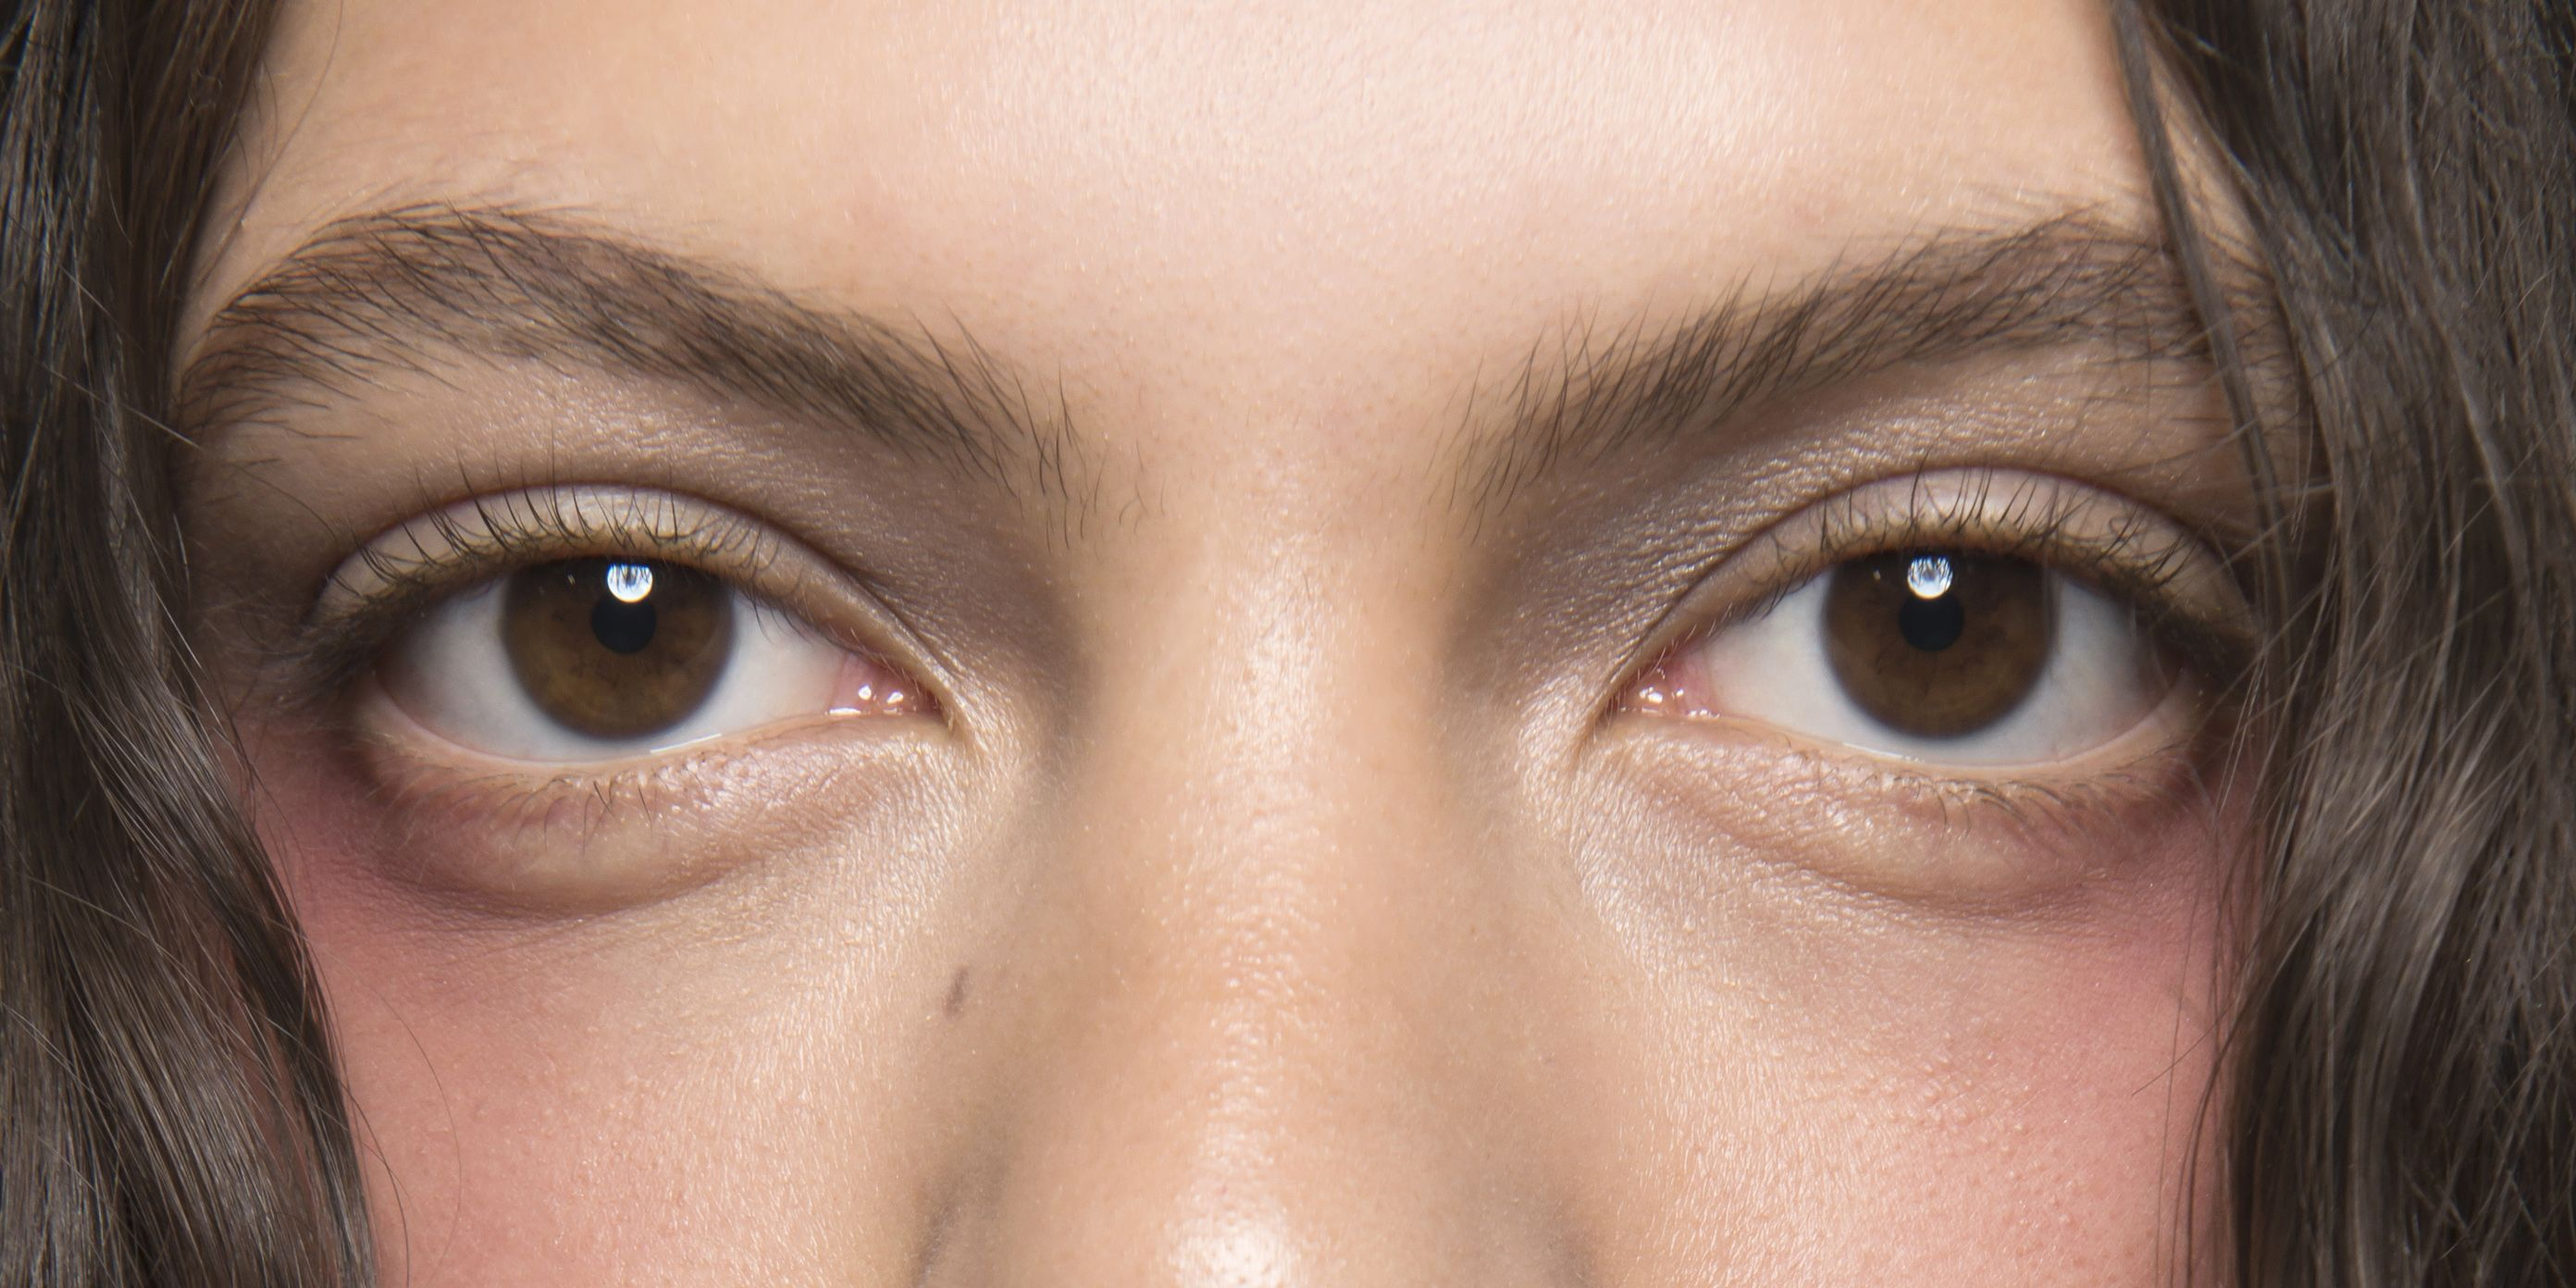 EyebrowShapes for your face